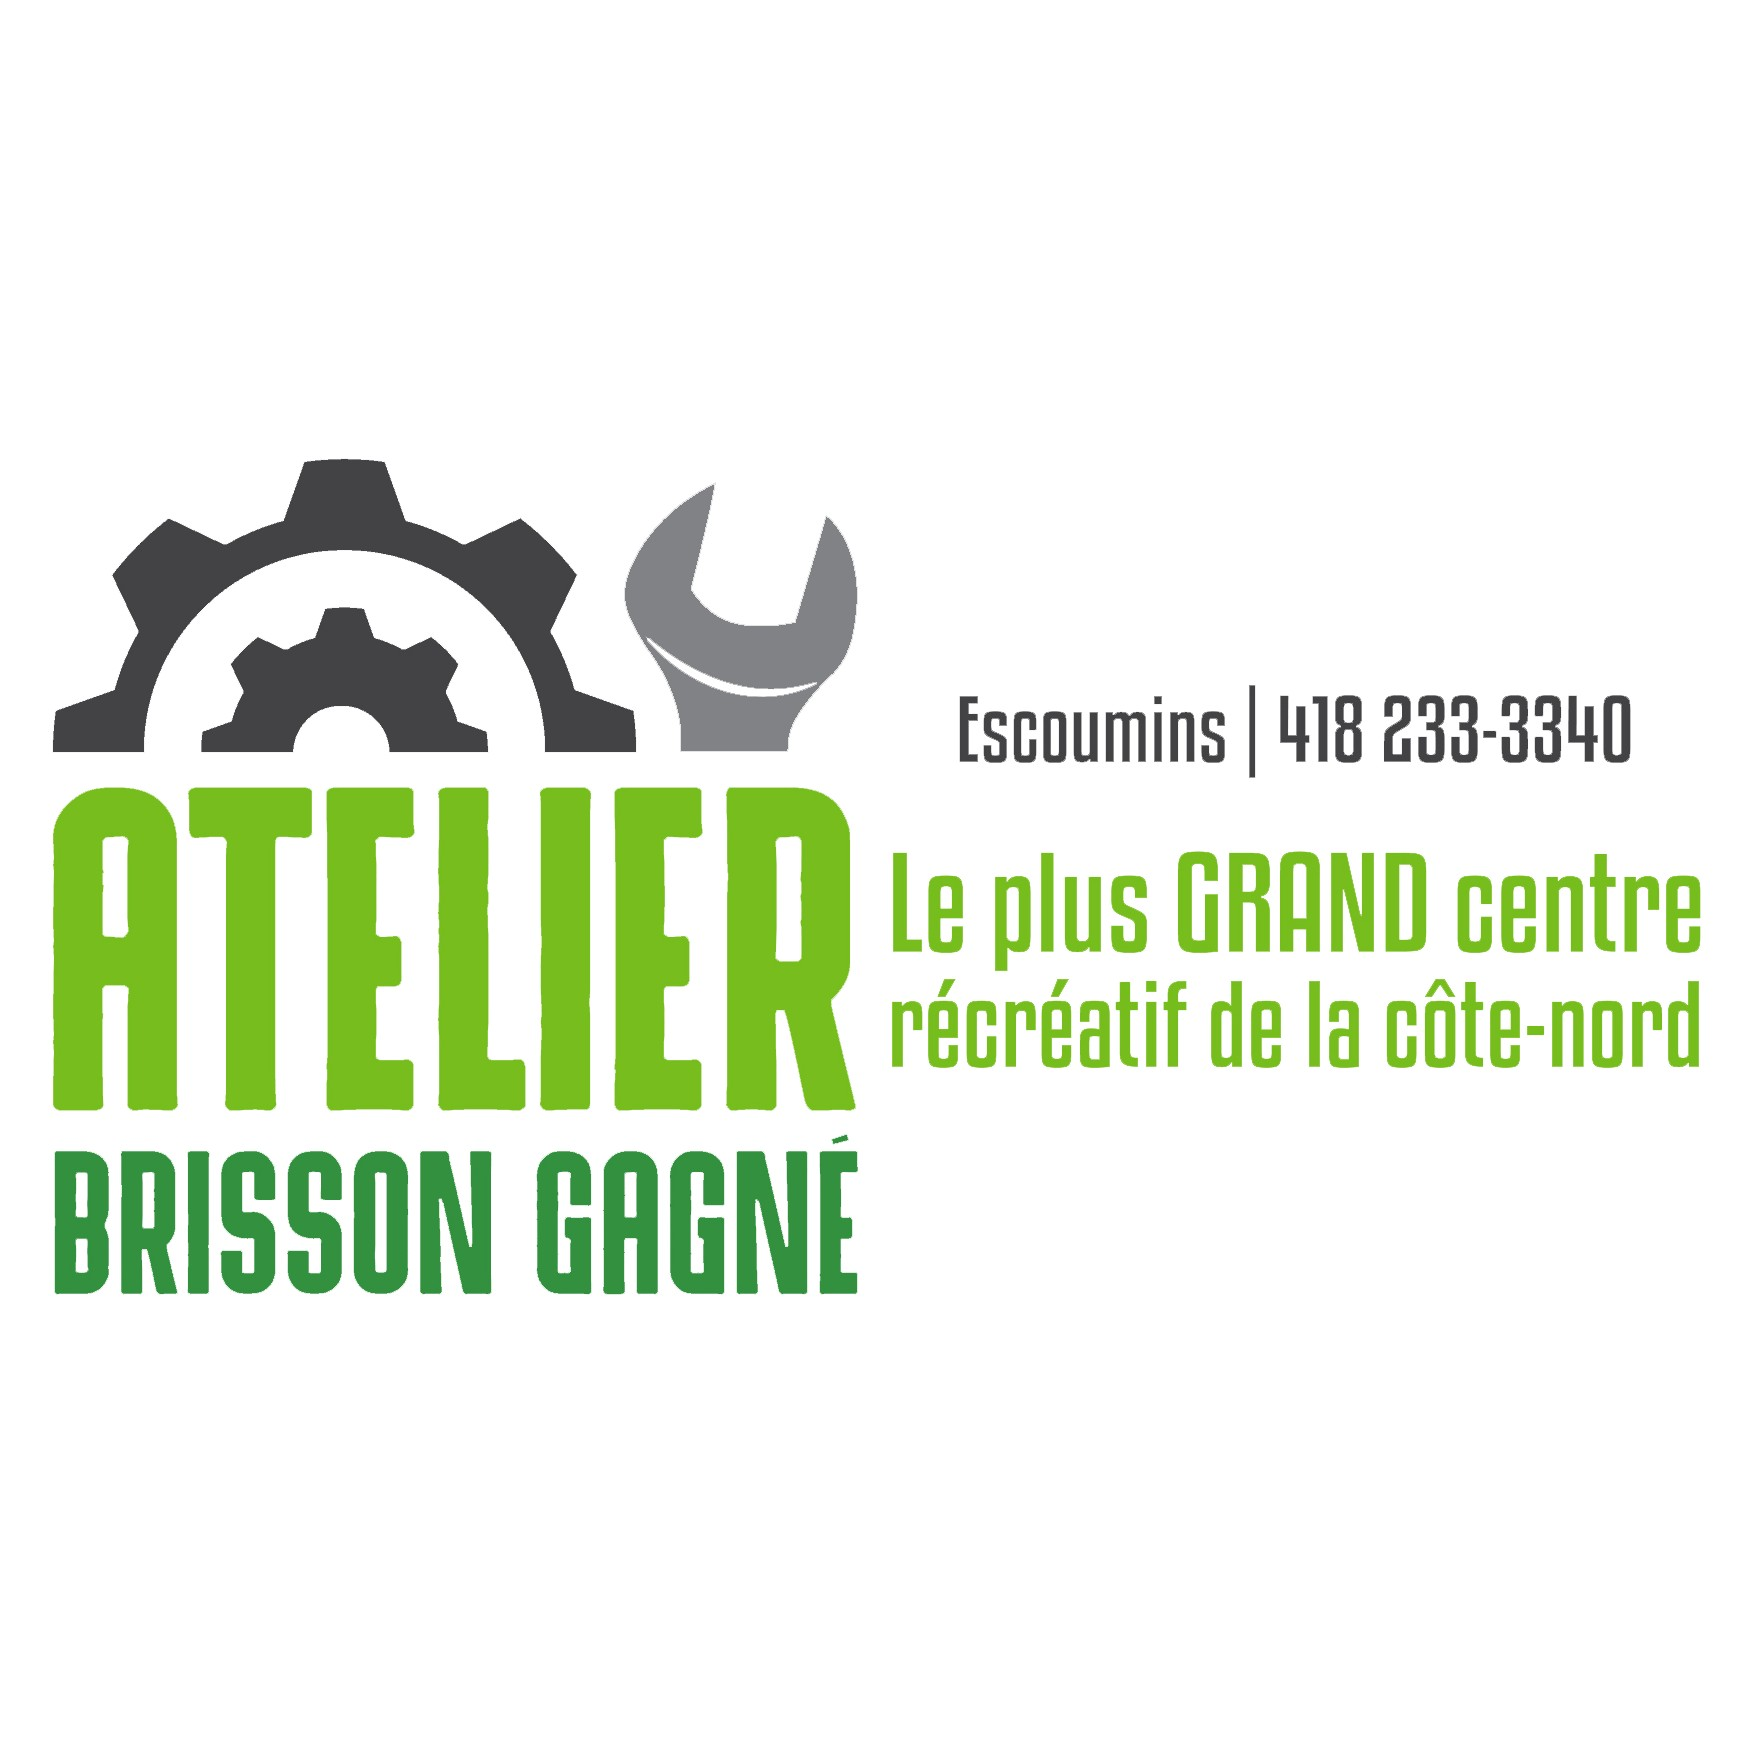 <br /> <b>Notice</b>:  Undefined variable: term in <b>/home/circulai/public_html/v4.circulaire-en-ligne.ca/applications/site/views/directory/businesses_list.php</b> on line <b>38</b><br />  atelier-brisson-gagne-inc